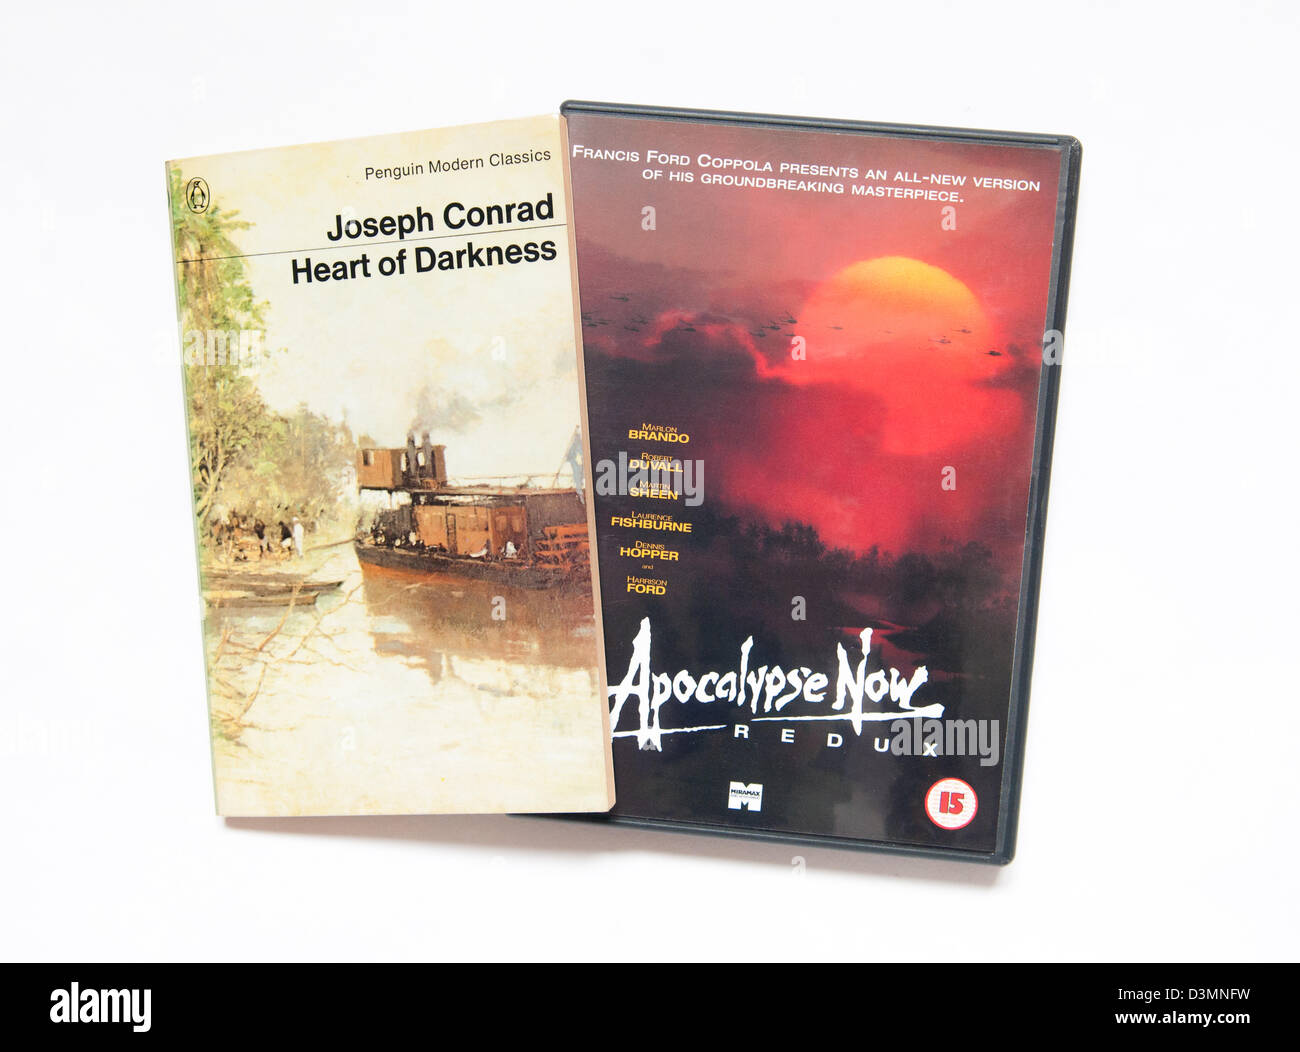 Heart Of Darkness by Joseph Conrad and the DVD of Apocalypse Now which was adapted from the book. - Stock Image